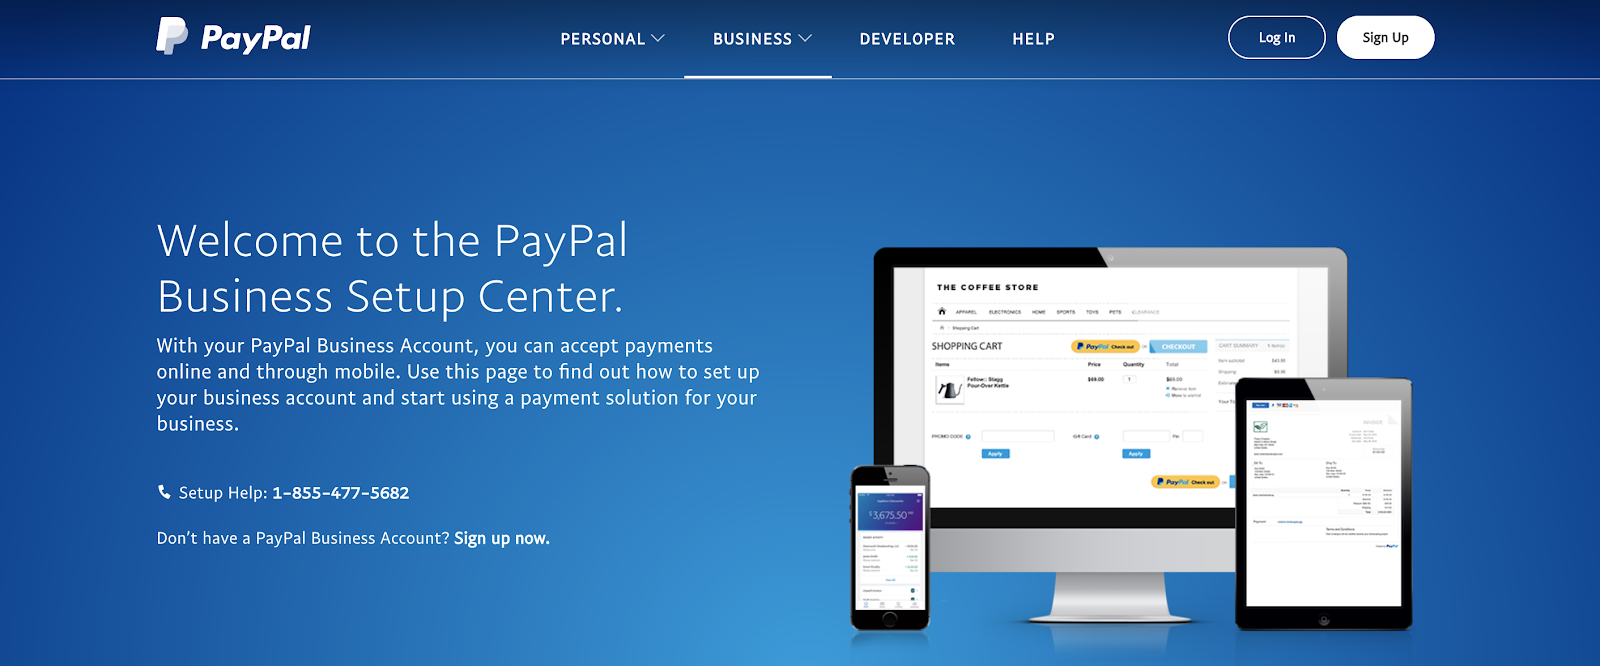 PayPal Business (Homepage Screenshot) for Bloggers